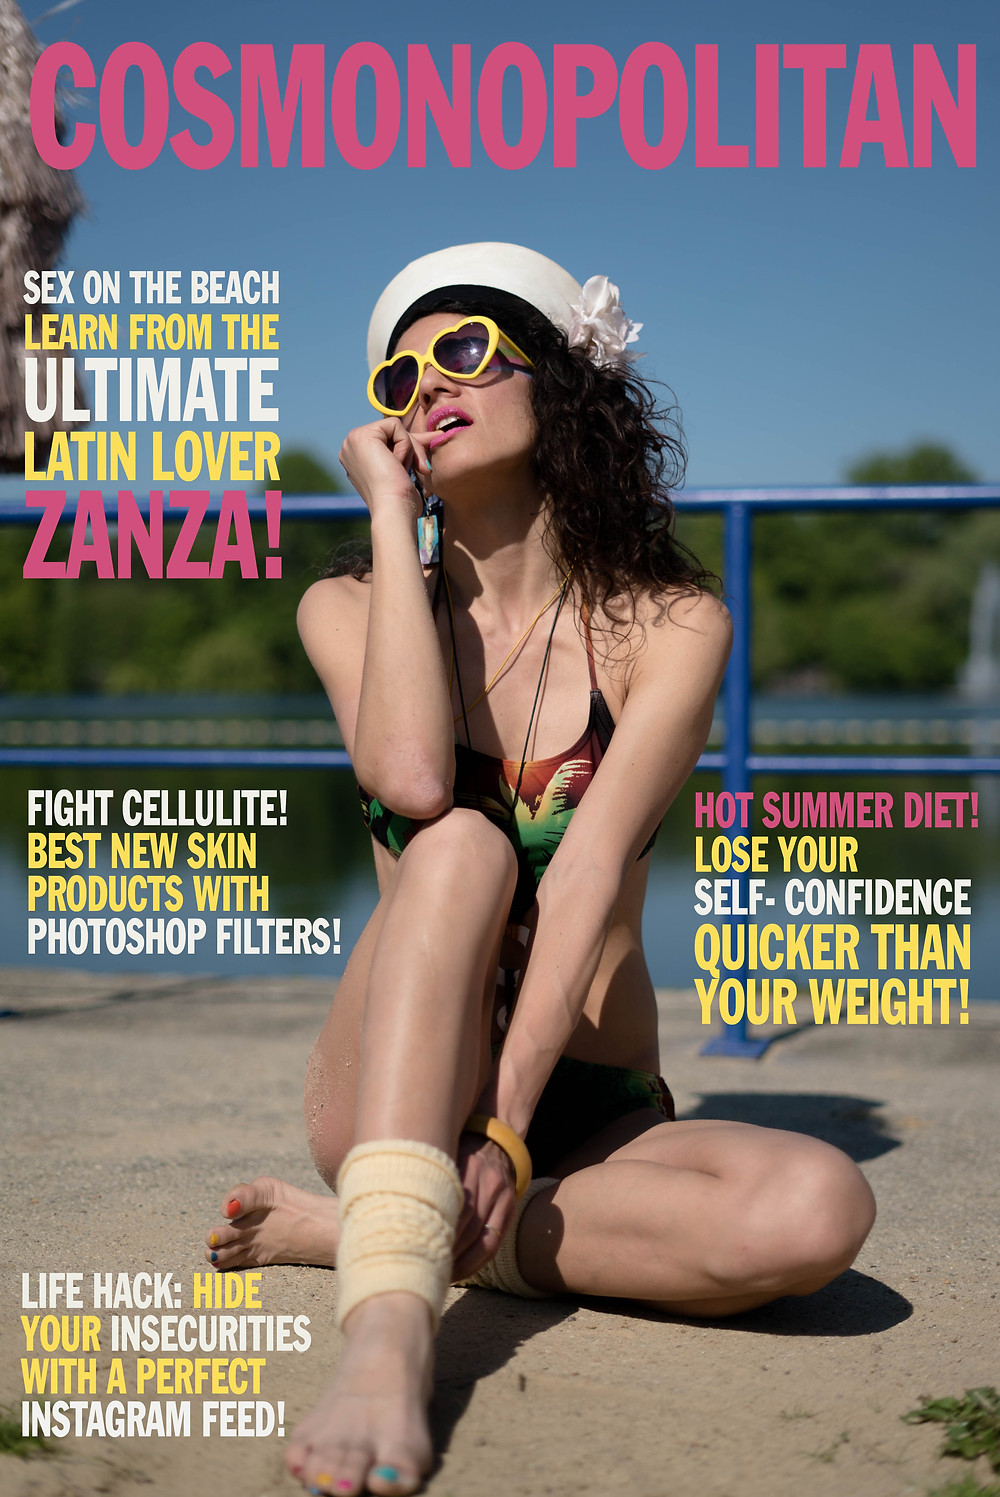 Cosmopolitan Cover - if fashion mags were honest